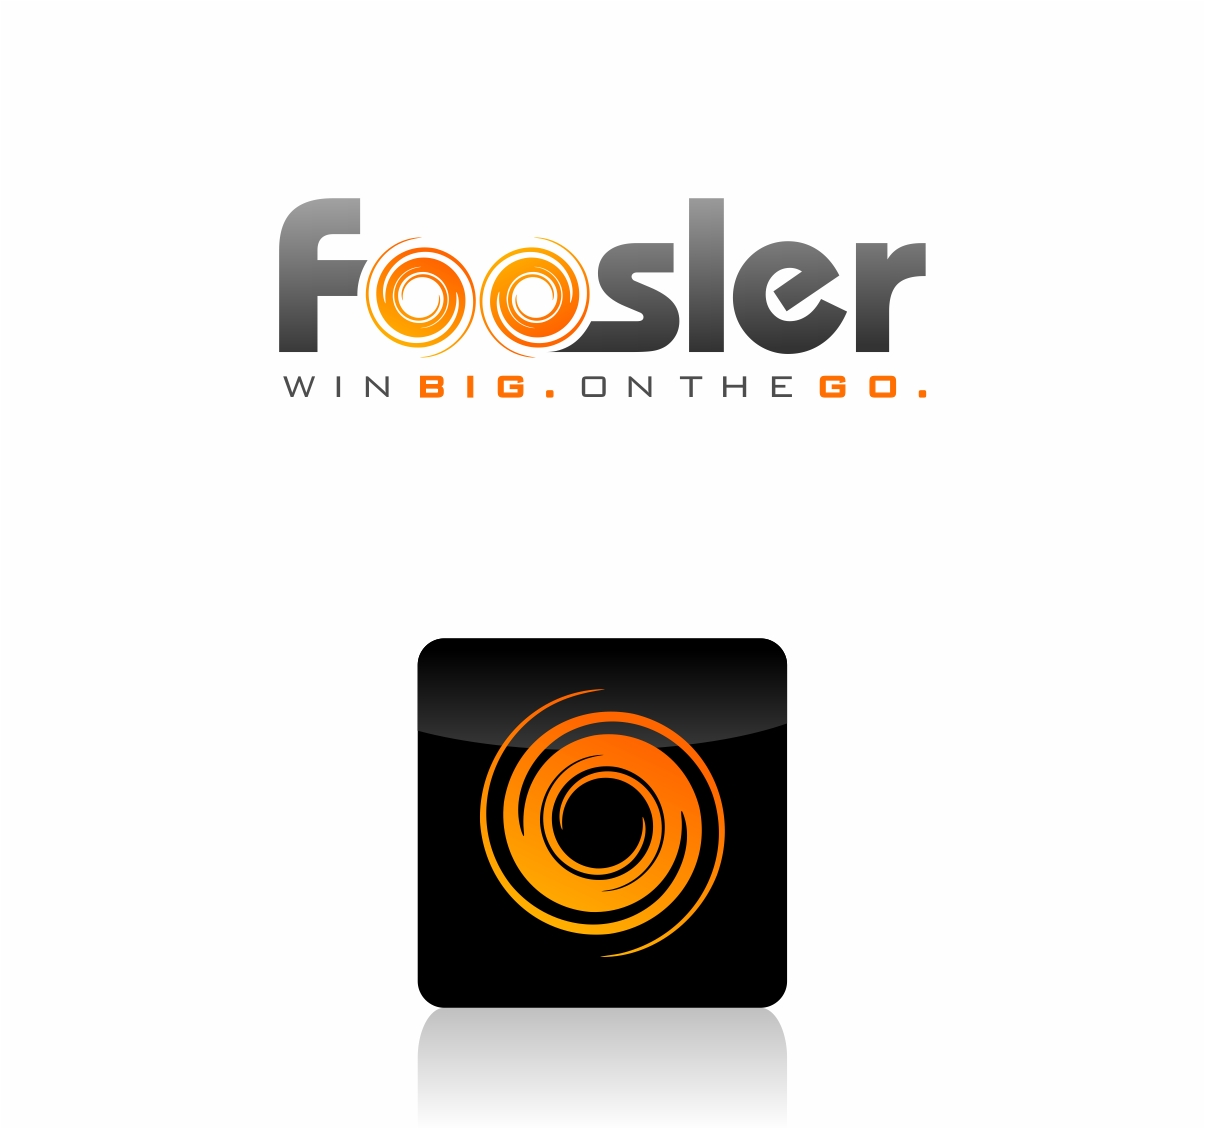 Logo Design by haidu - Entry No. 93 in the Logo Design Contest Foosler Logo Design.